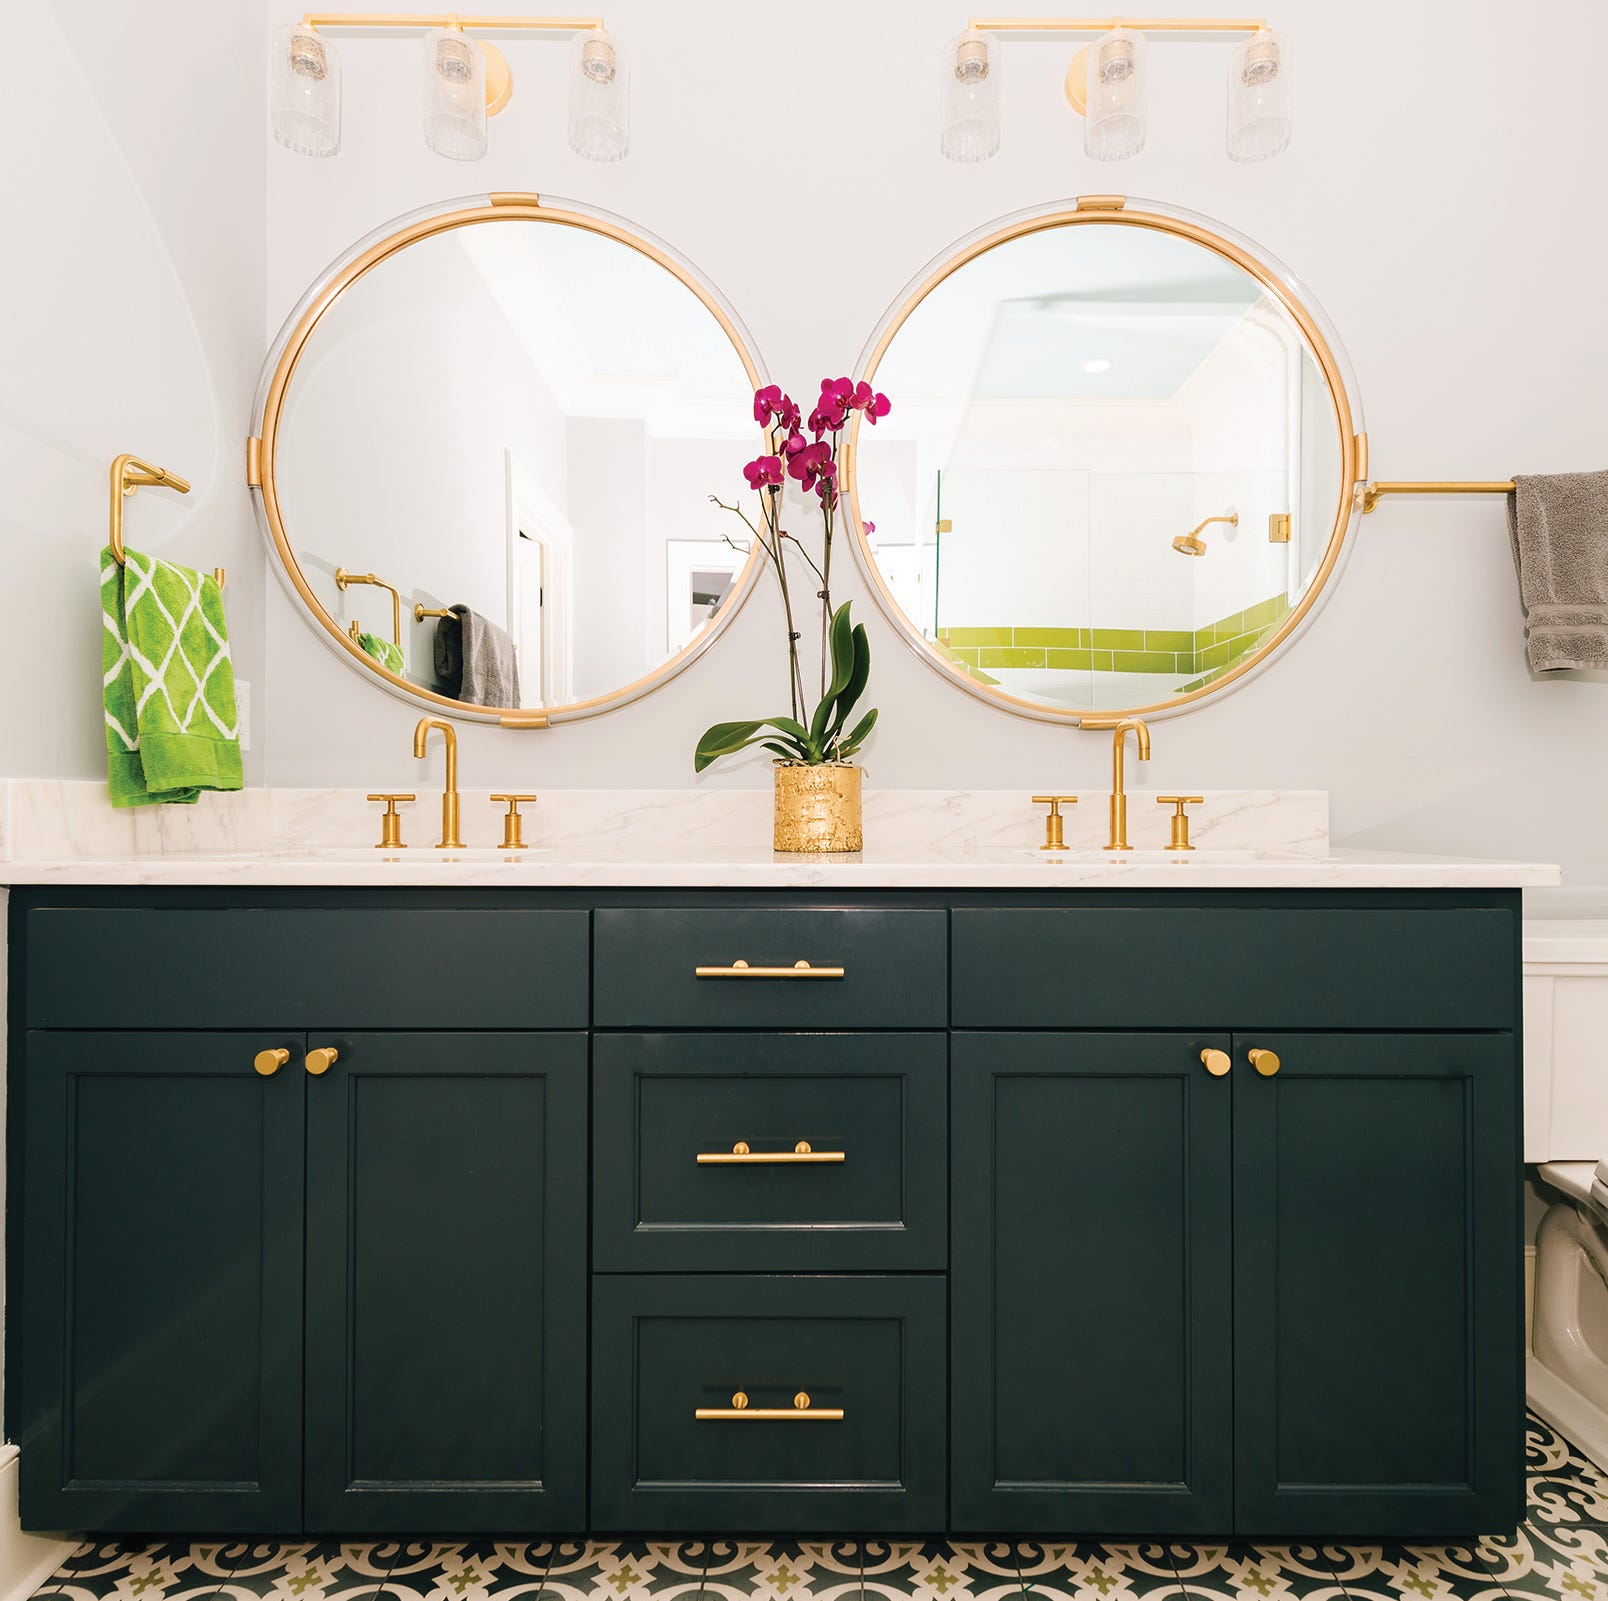 Bathroom as a favorite room? When it looks this good, nothing's wrong with that